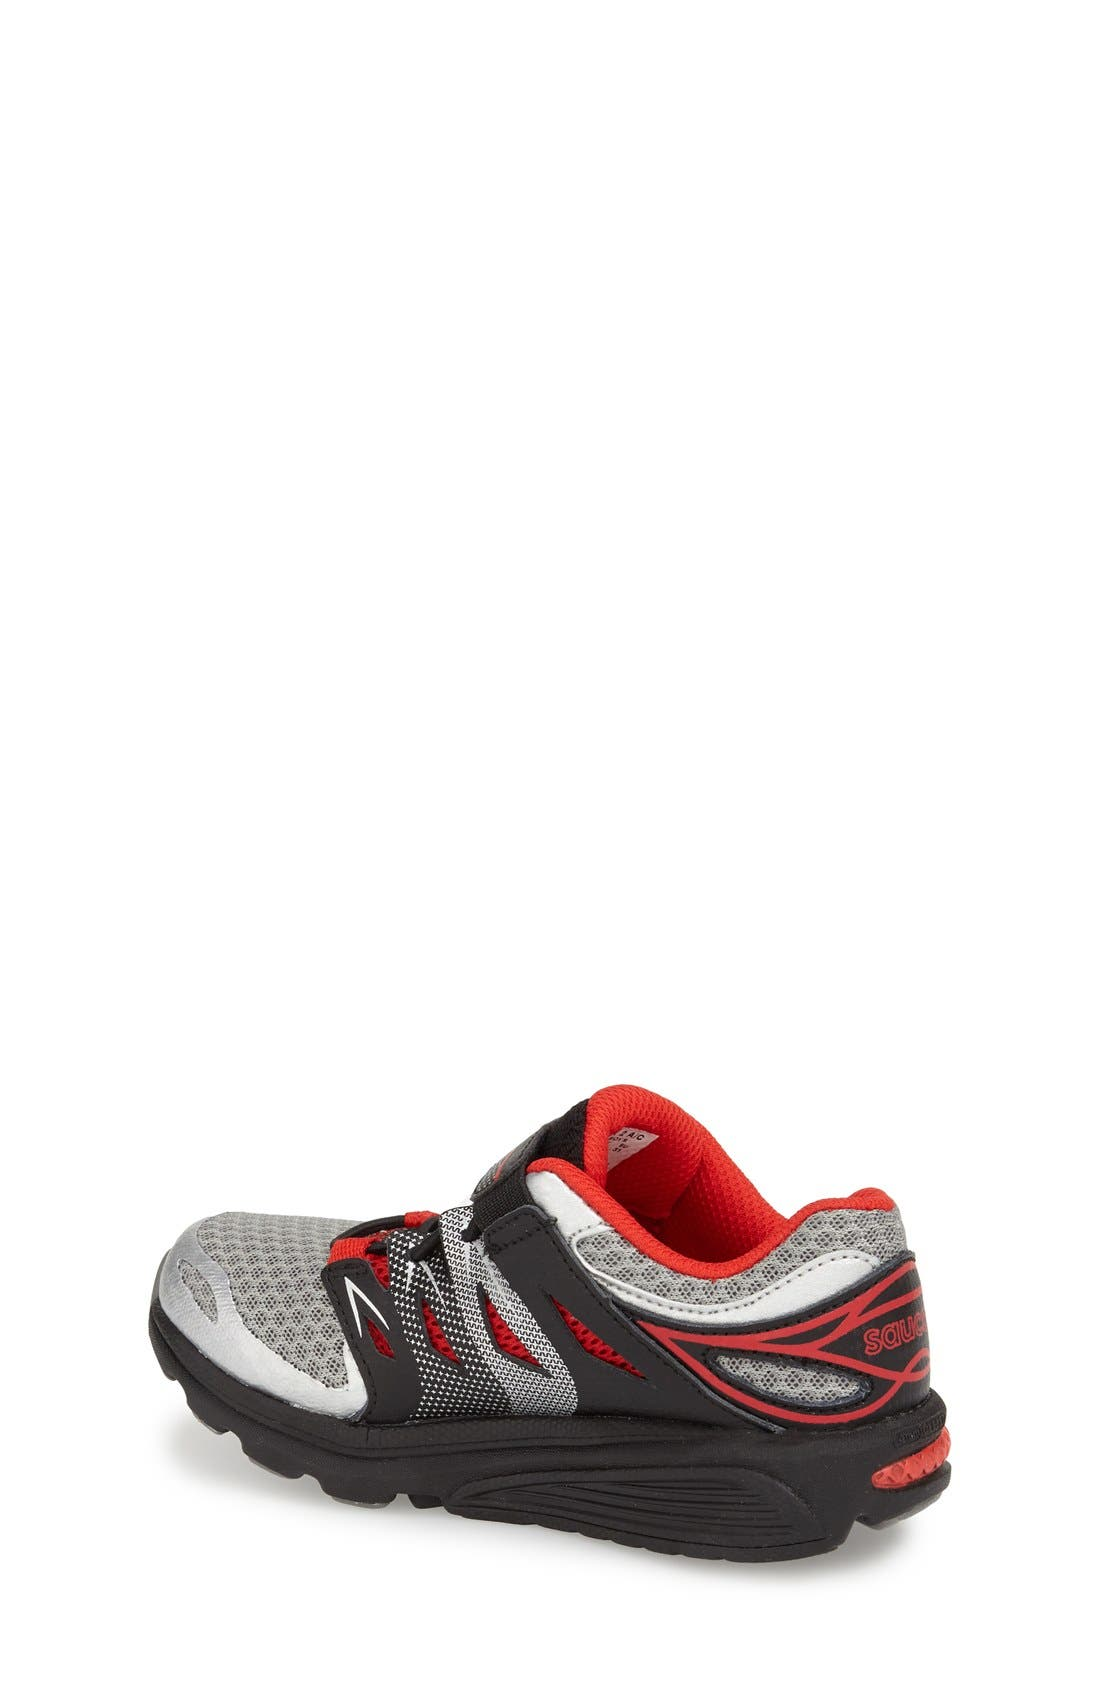 'Zealot 2 AC' Running Shoe,                             Alternate thumbnail 2, color,                             Grey/ Red